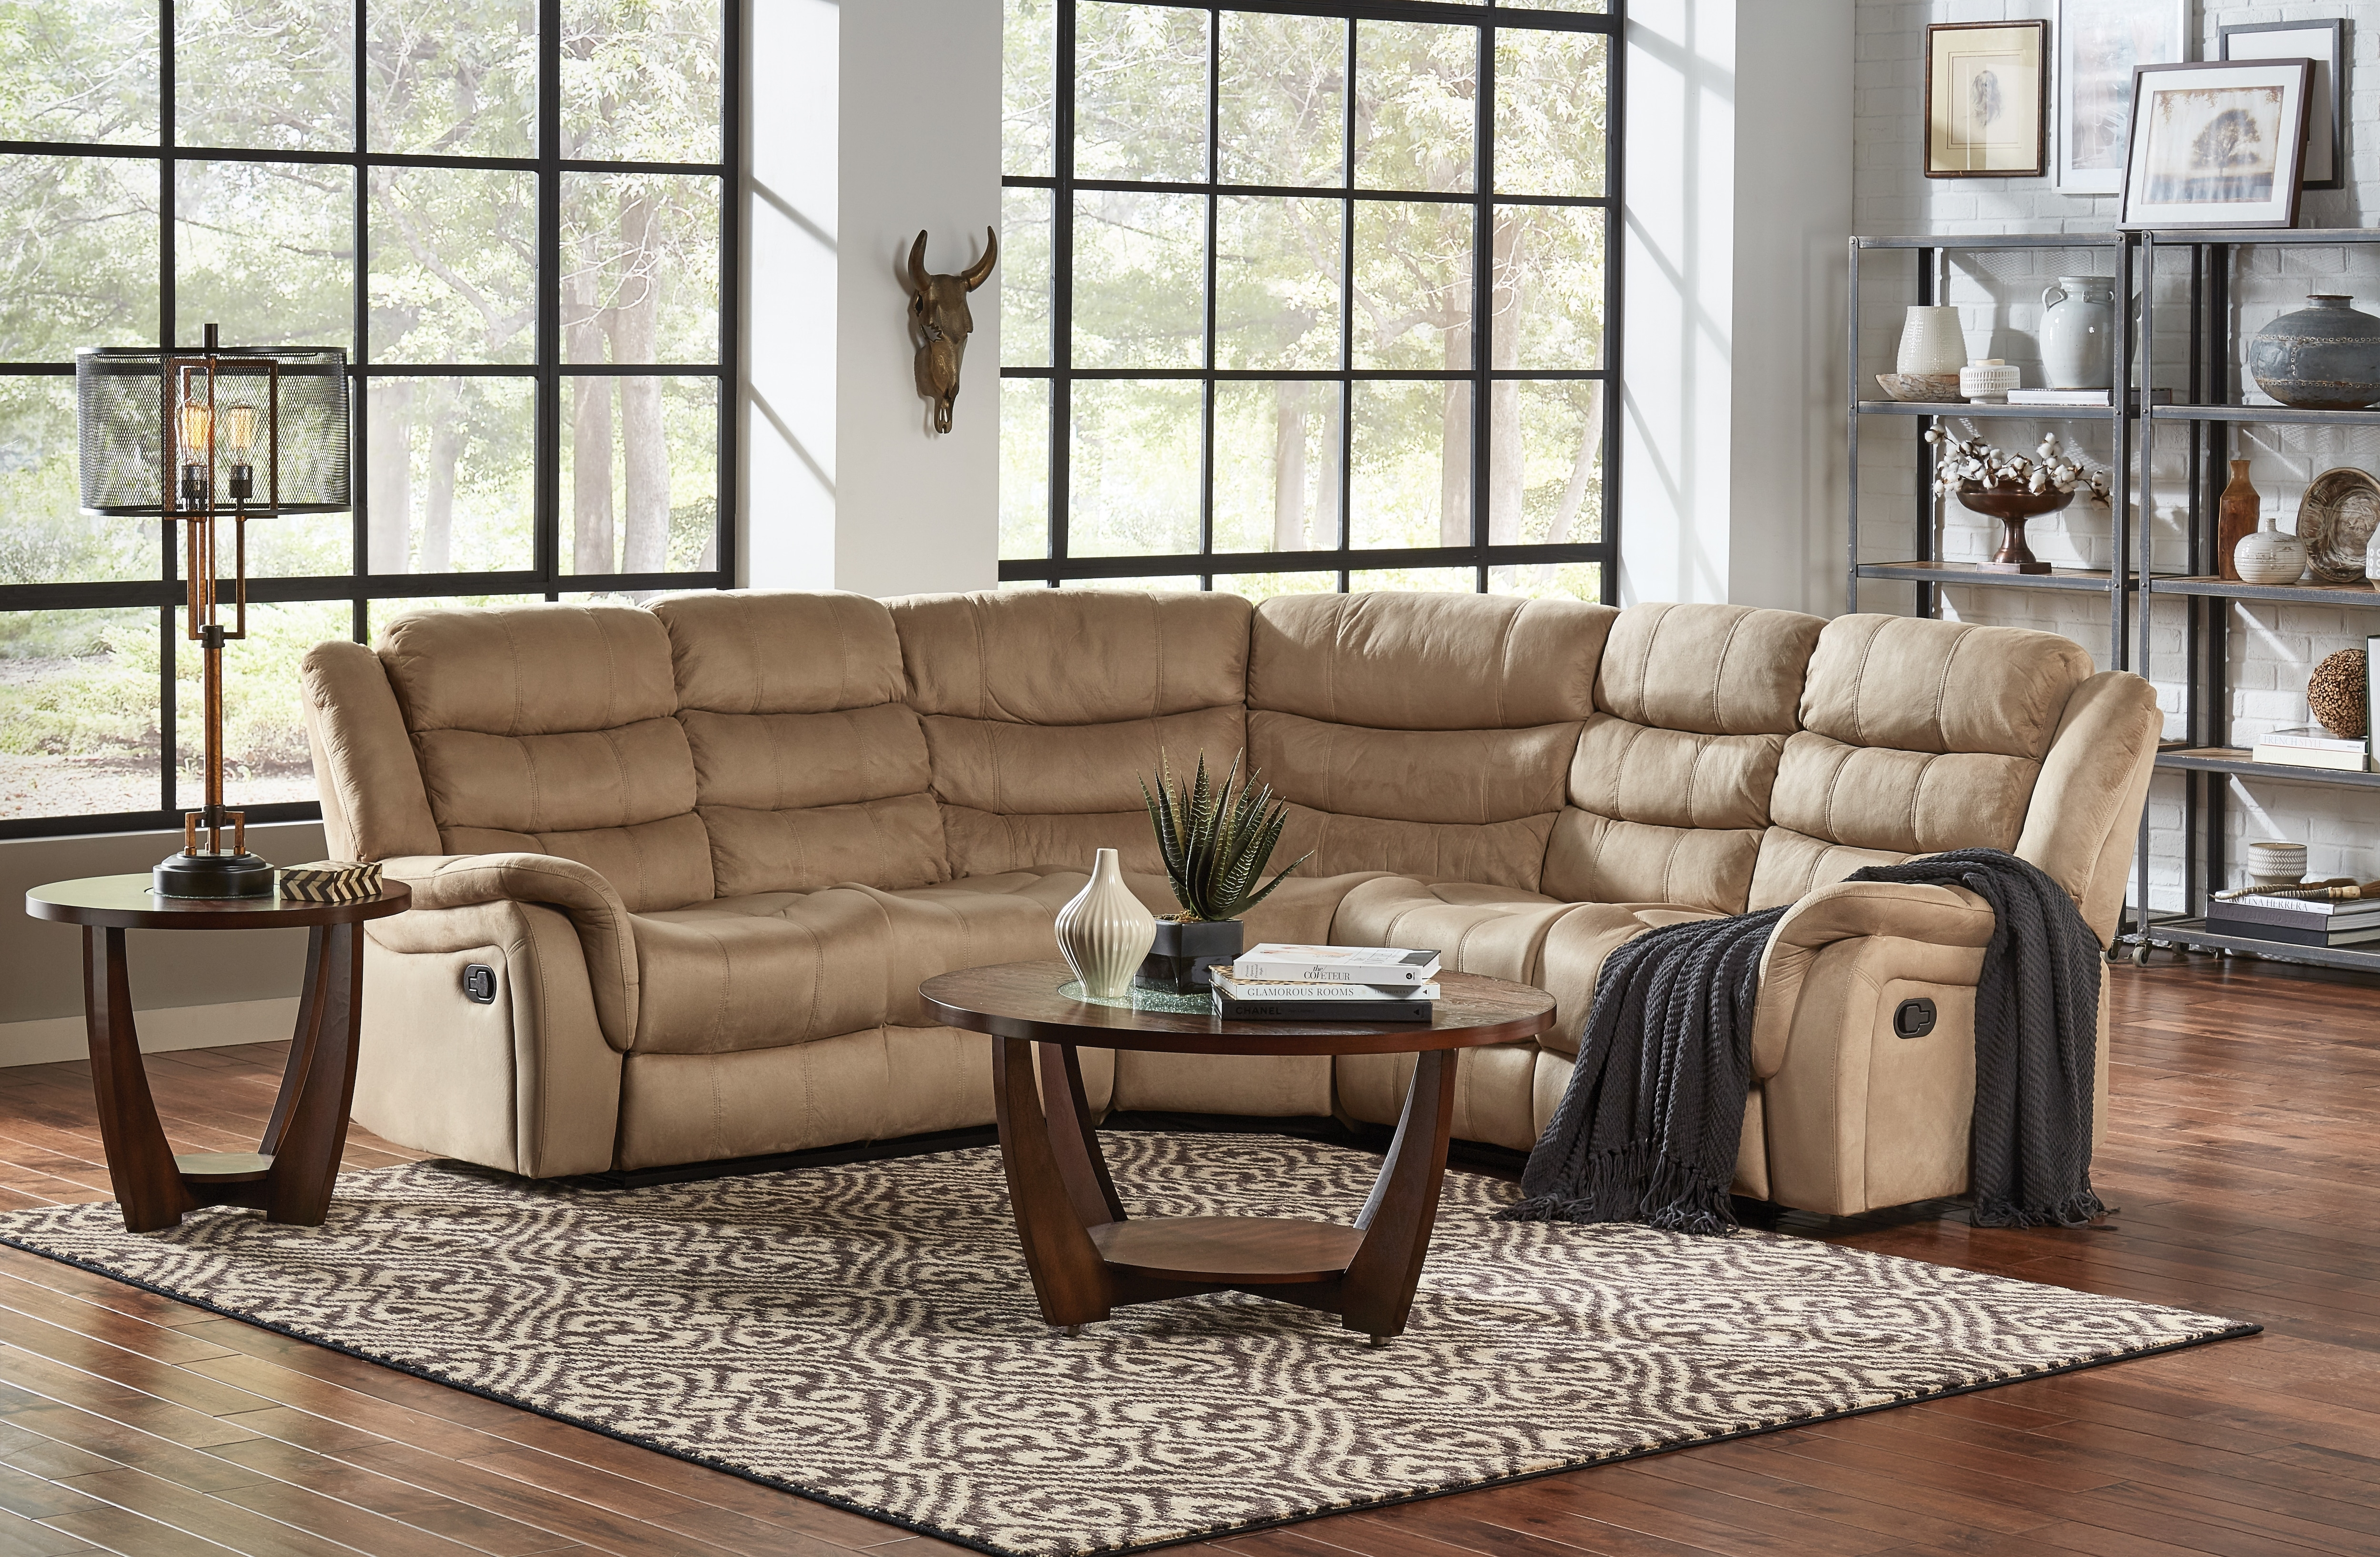 Benton 3Pc Reclining Sectional | Within Glamour Ii 3 Piece Sectionals (View 21 of 25)